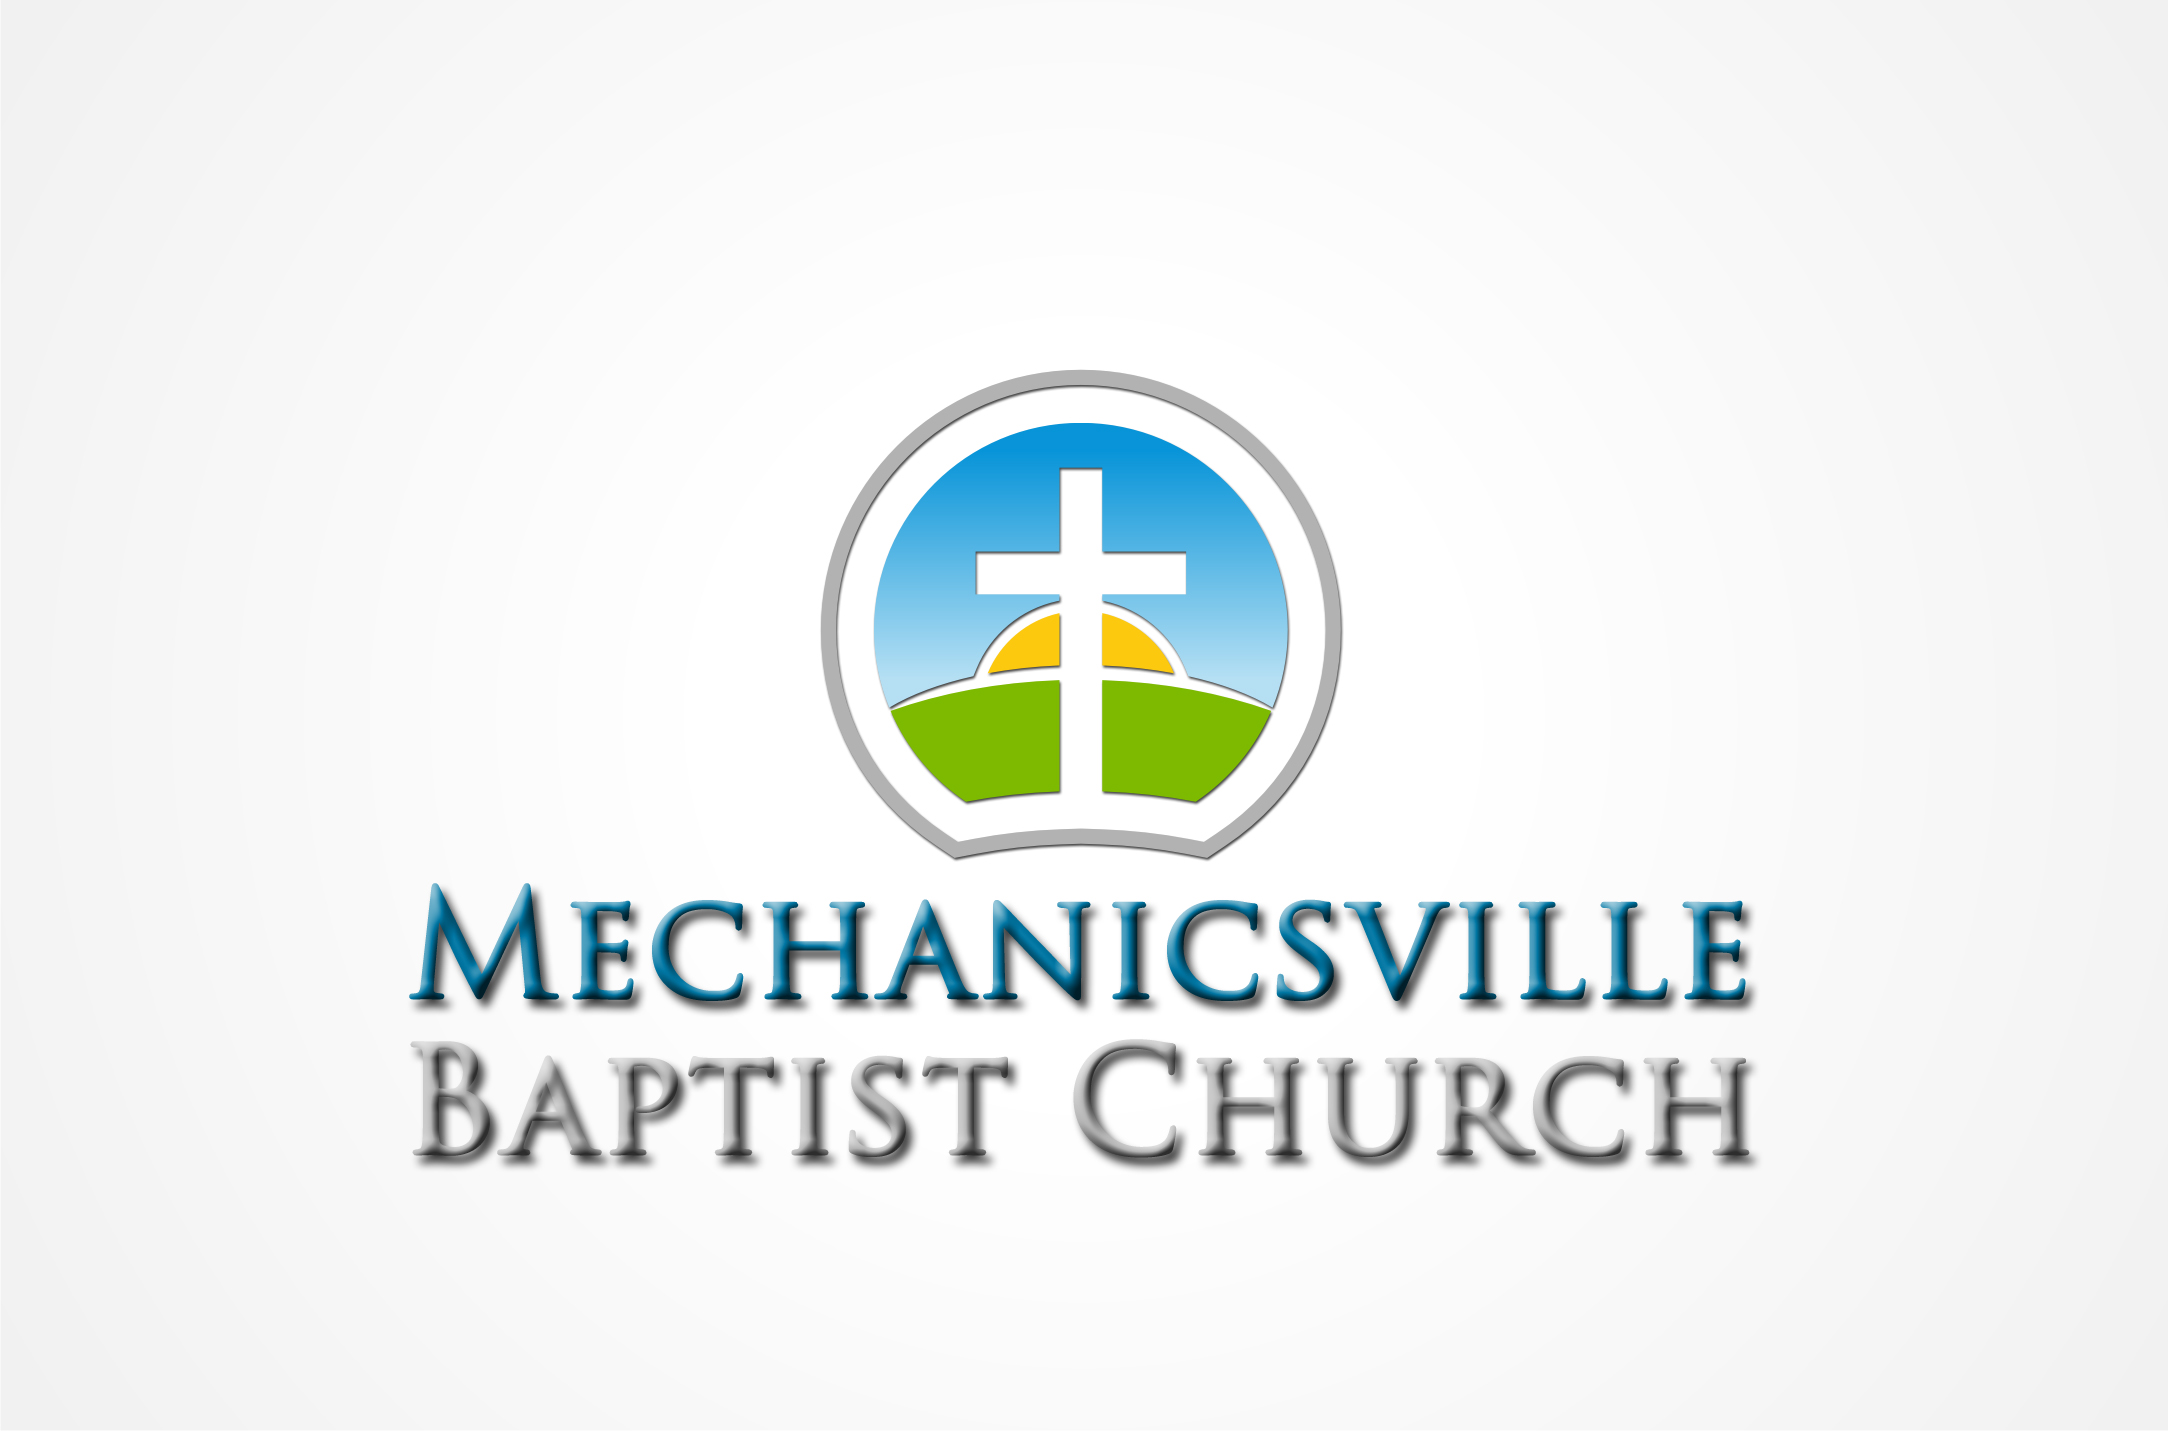 Mechanicsville Baptist